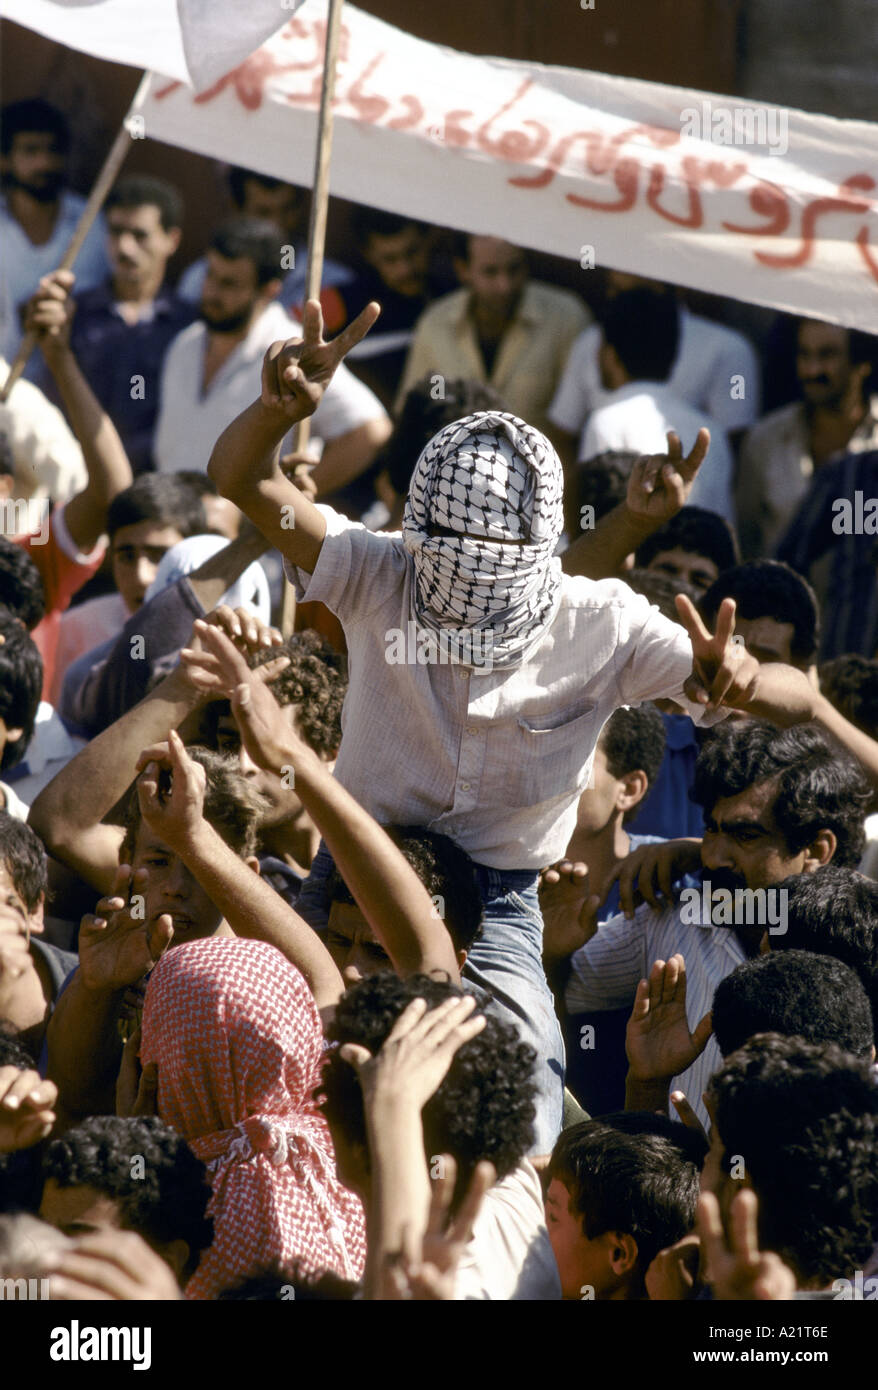 A Palestinian Intifada demonstration, Israel - Stock Image